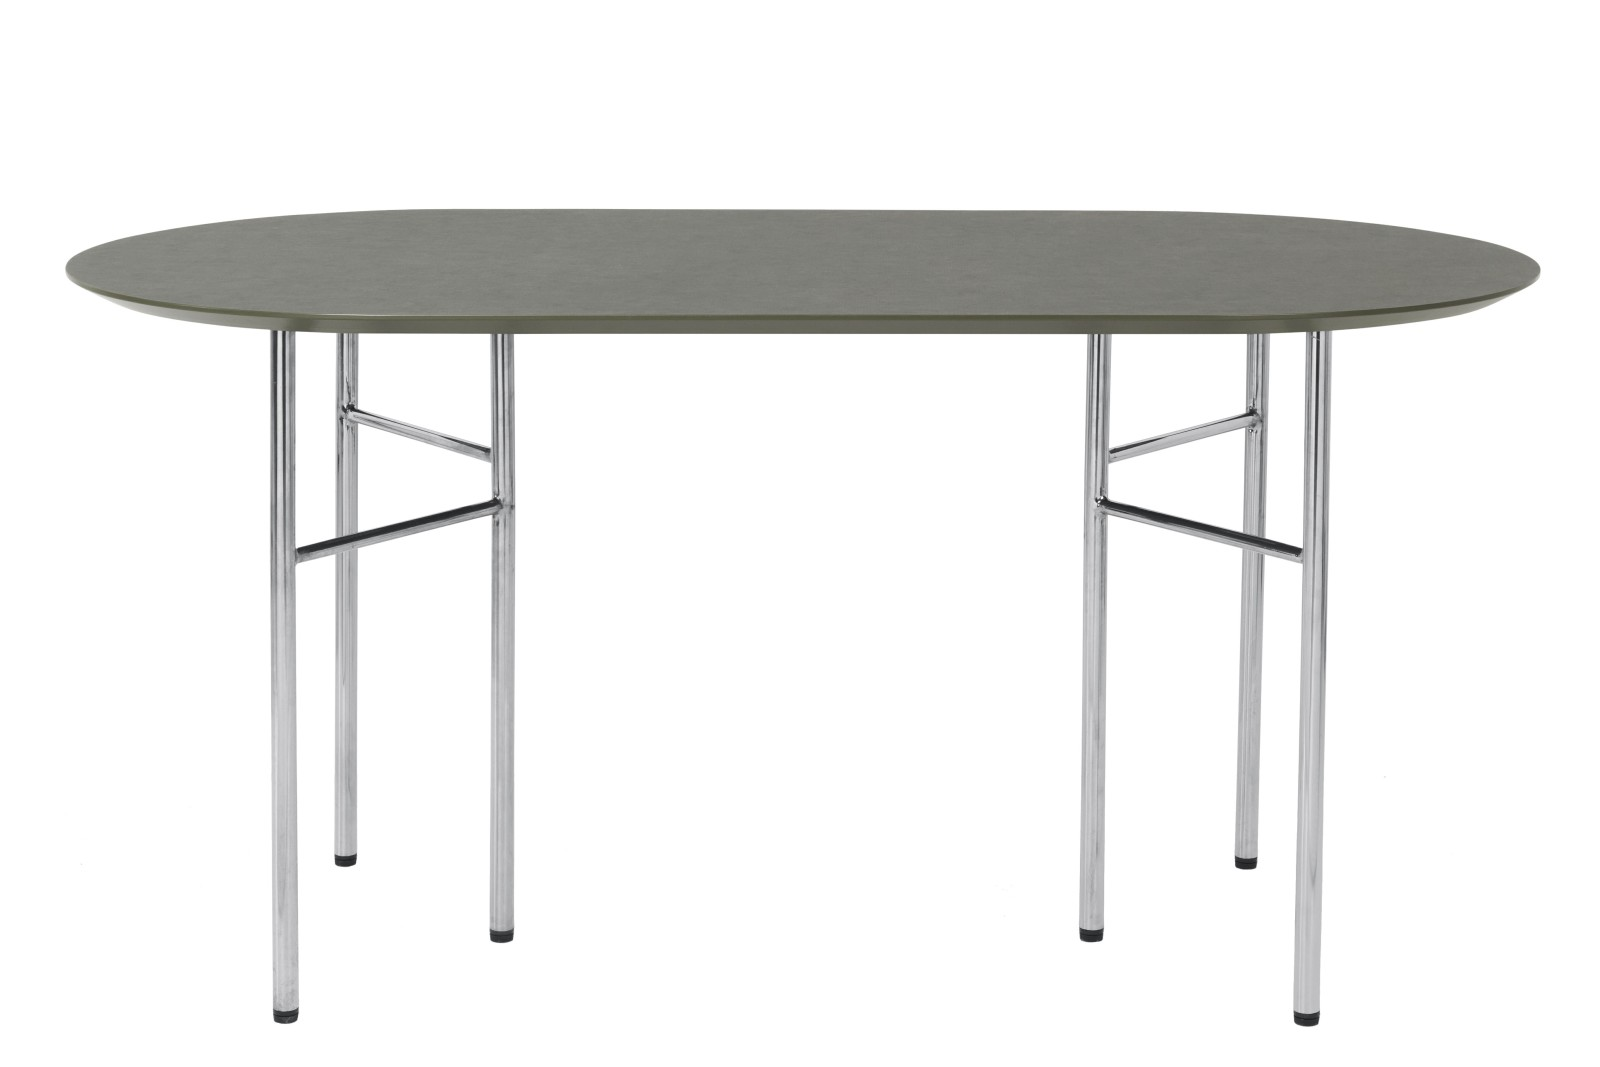 Mingle Oval Dining Table Tarkett Linoleum, Metal Chrome, 75 x 150cm